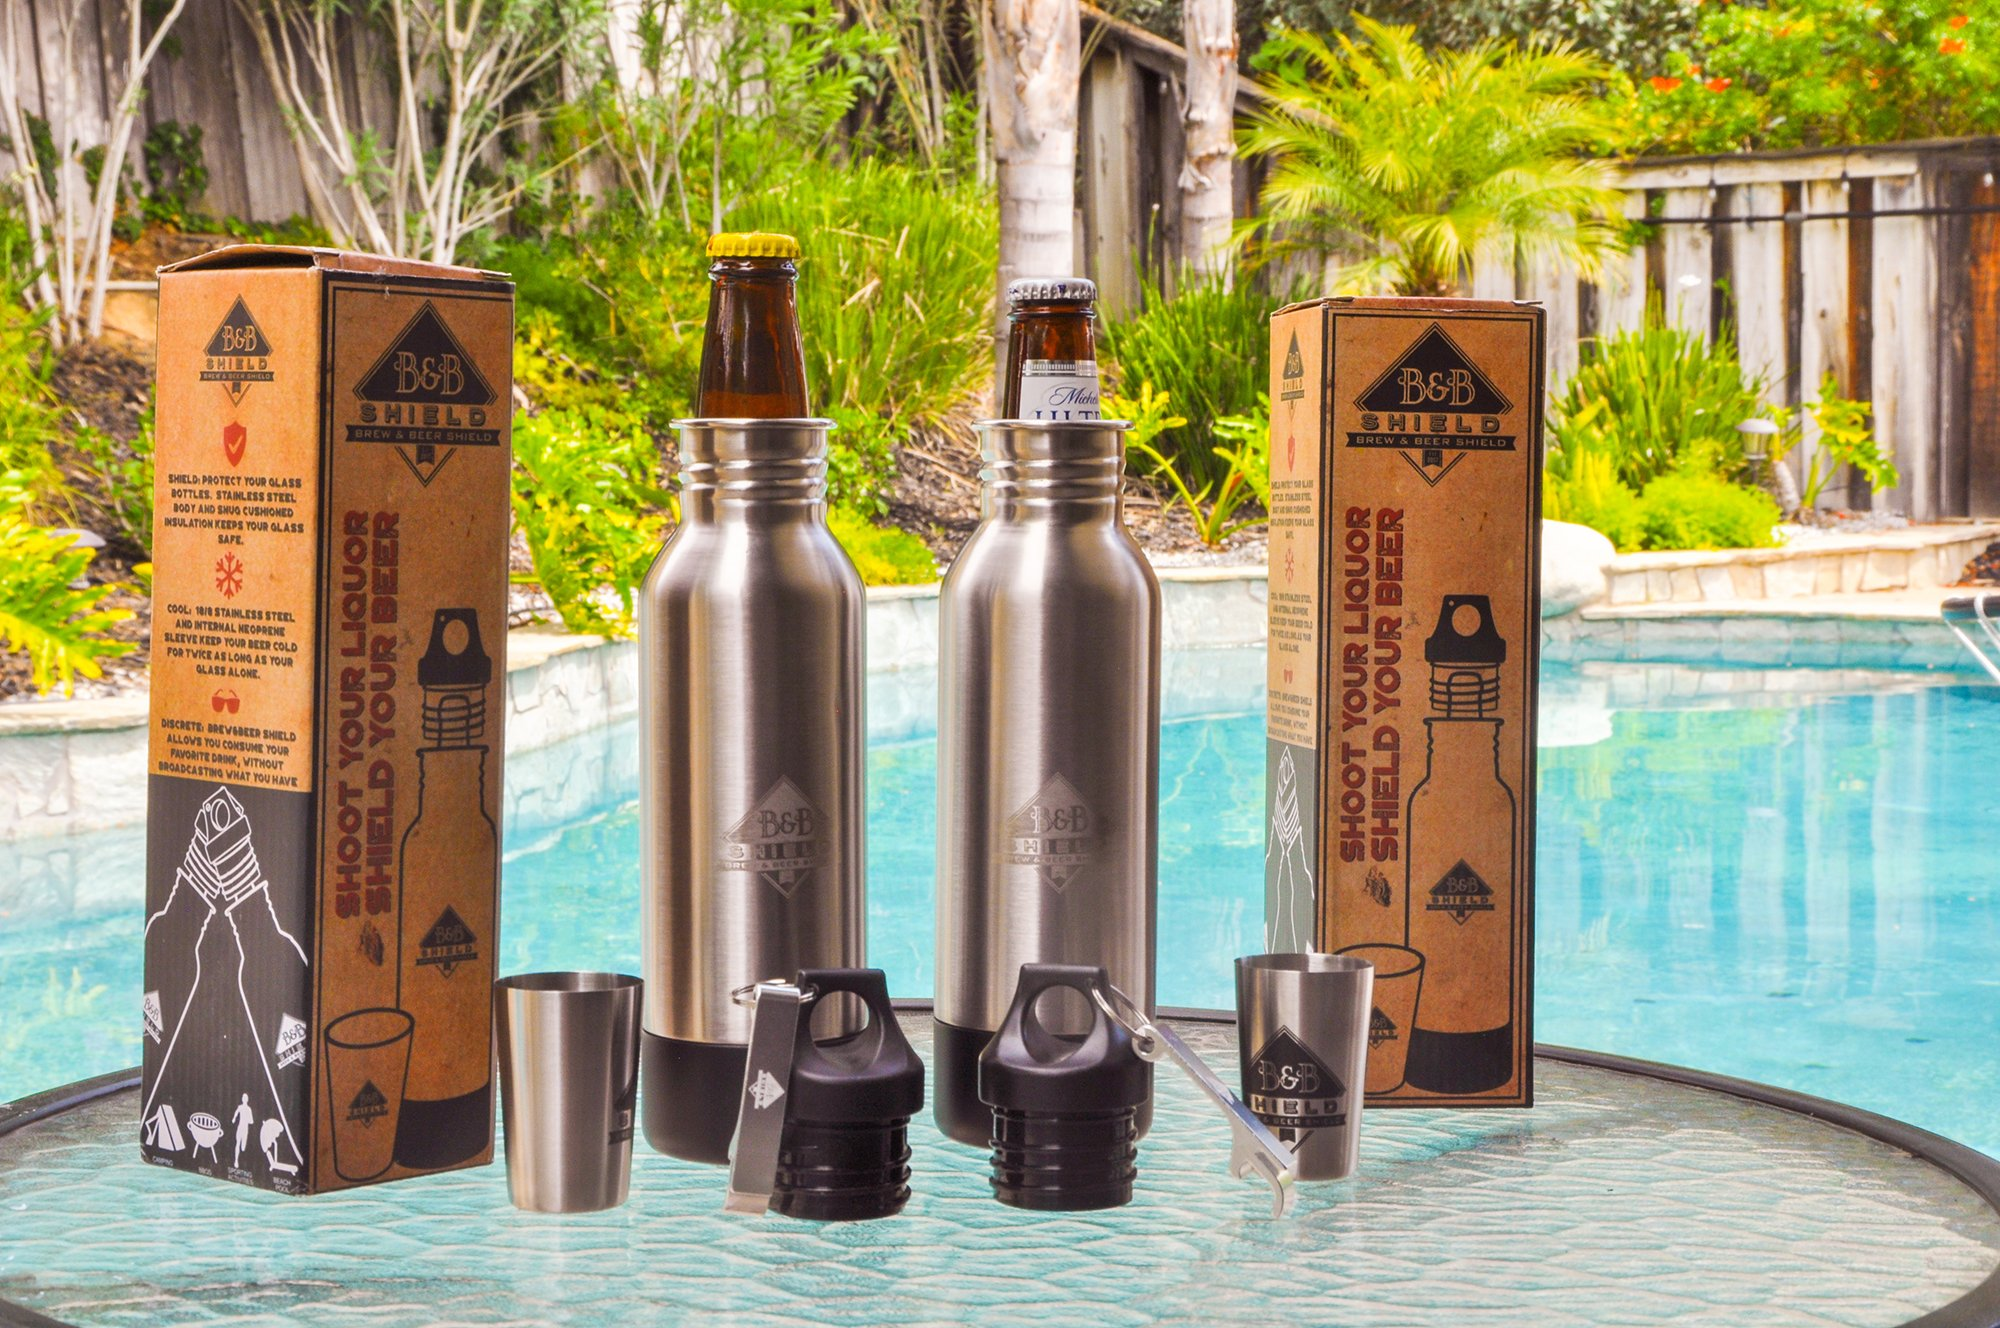 Brew & Beer Shield: Stainless Steel Beer  Insulate Protect Conceal 12 ounce glass bottles. Ideal beer lover gift. Perfect for Pool Spa Beach Tailgating Beer Bottle Holder Keeper